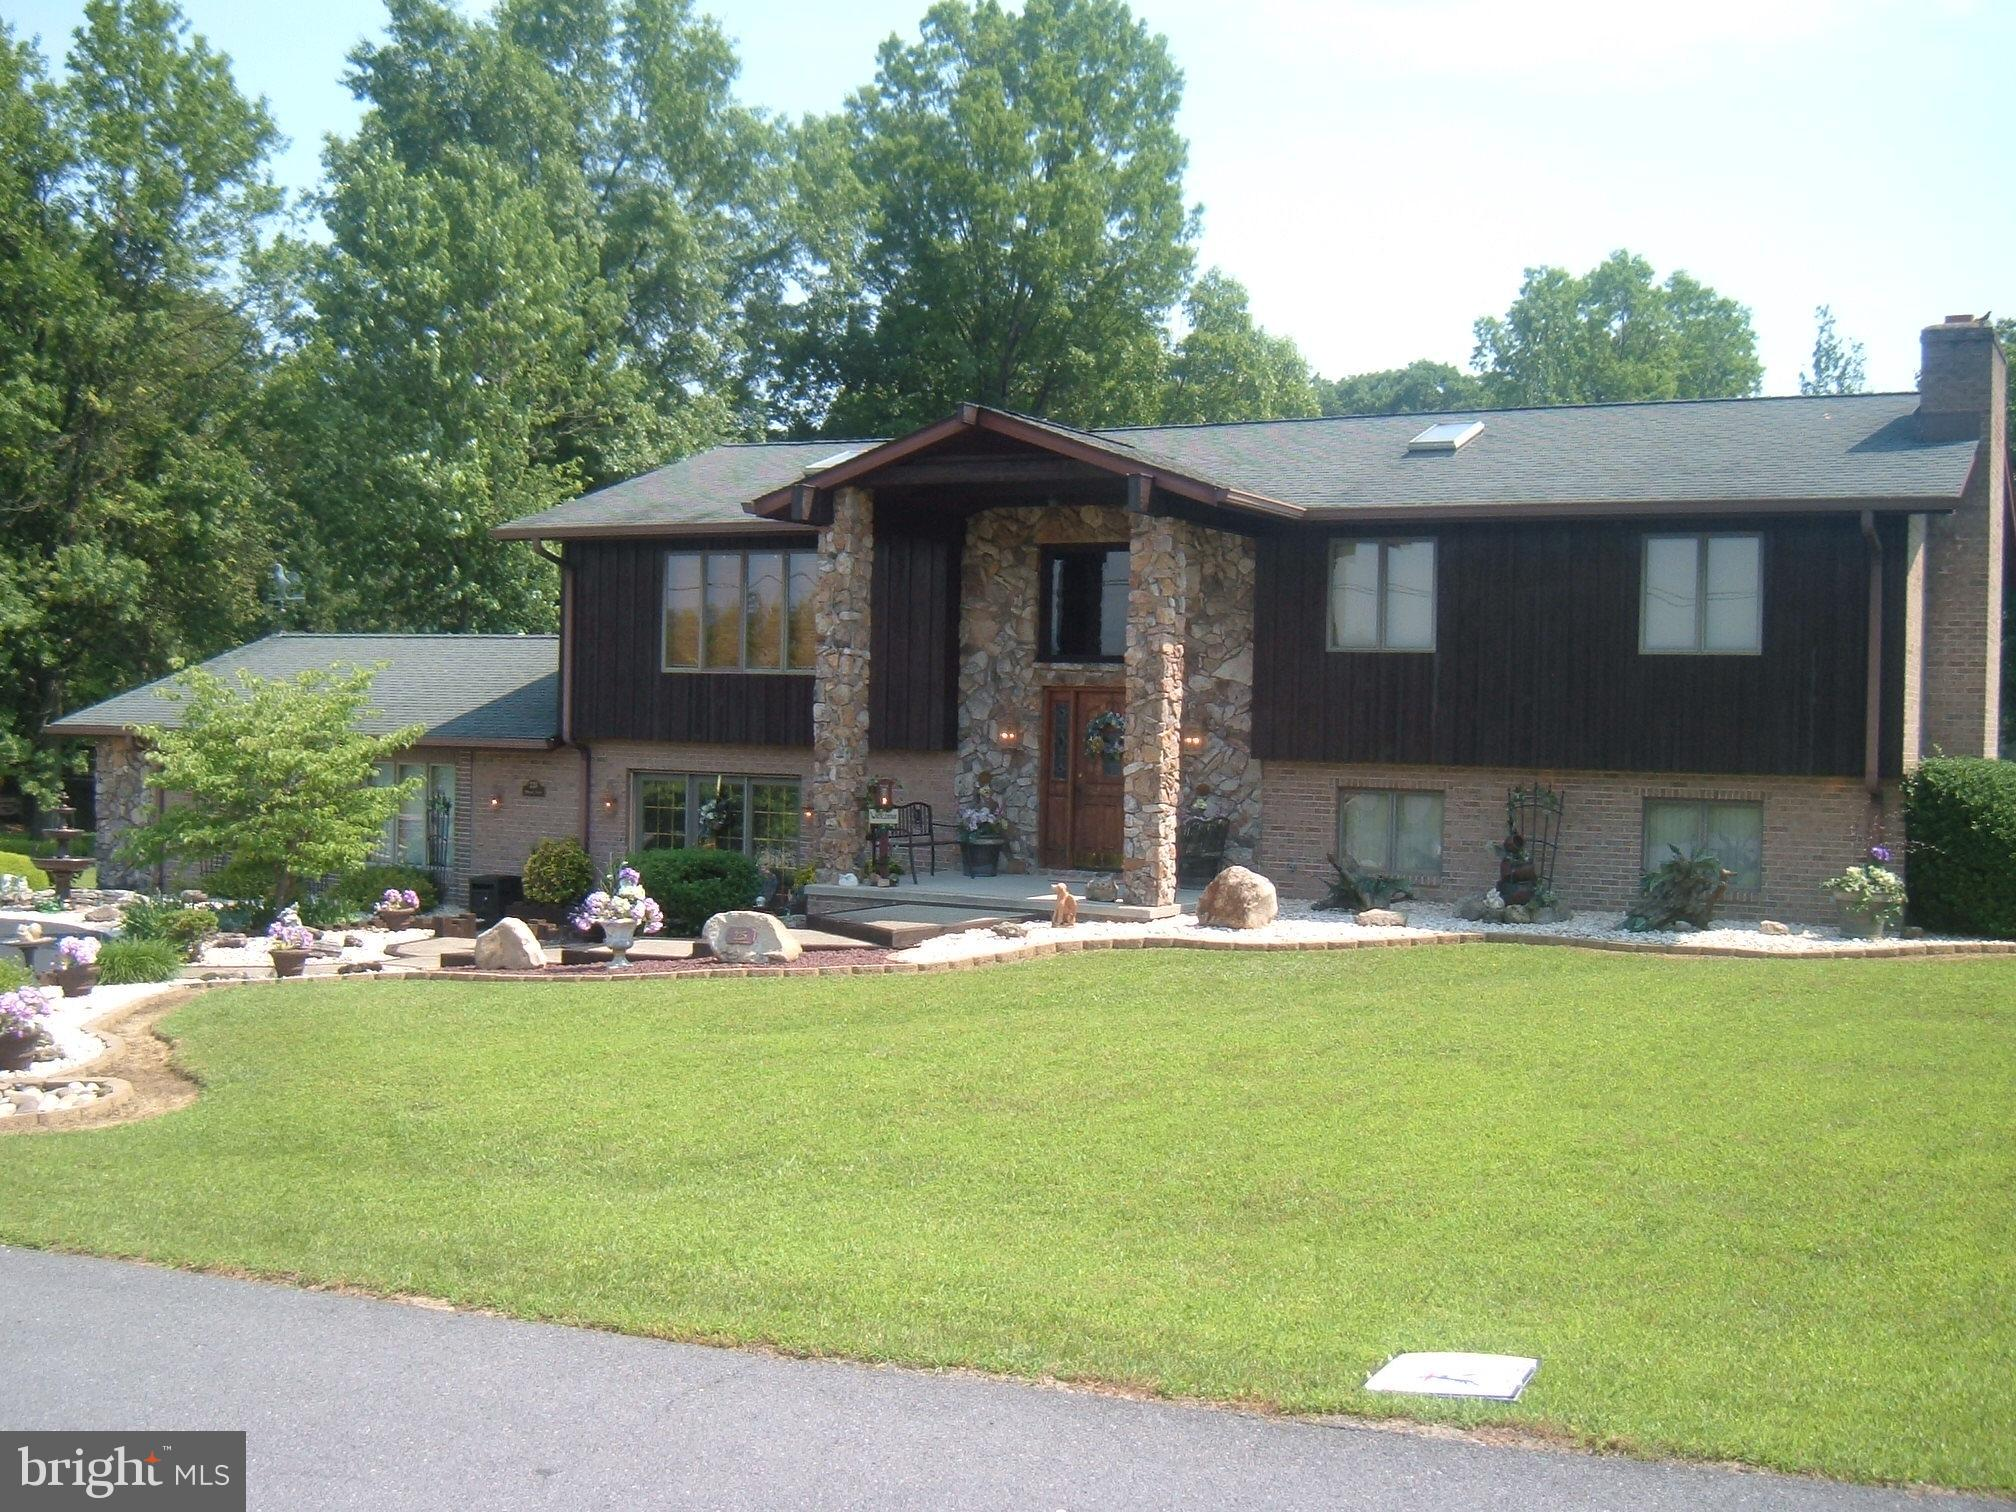 225 BOWDEN DRIVE, FORT ASHBY, WV 26719